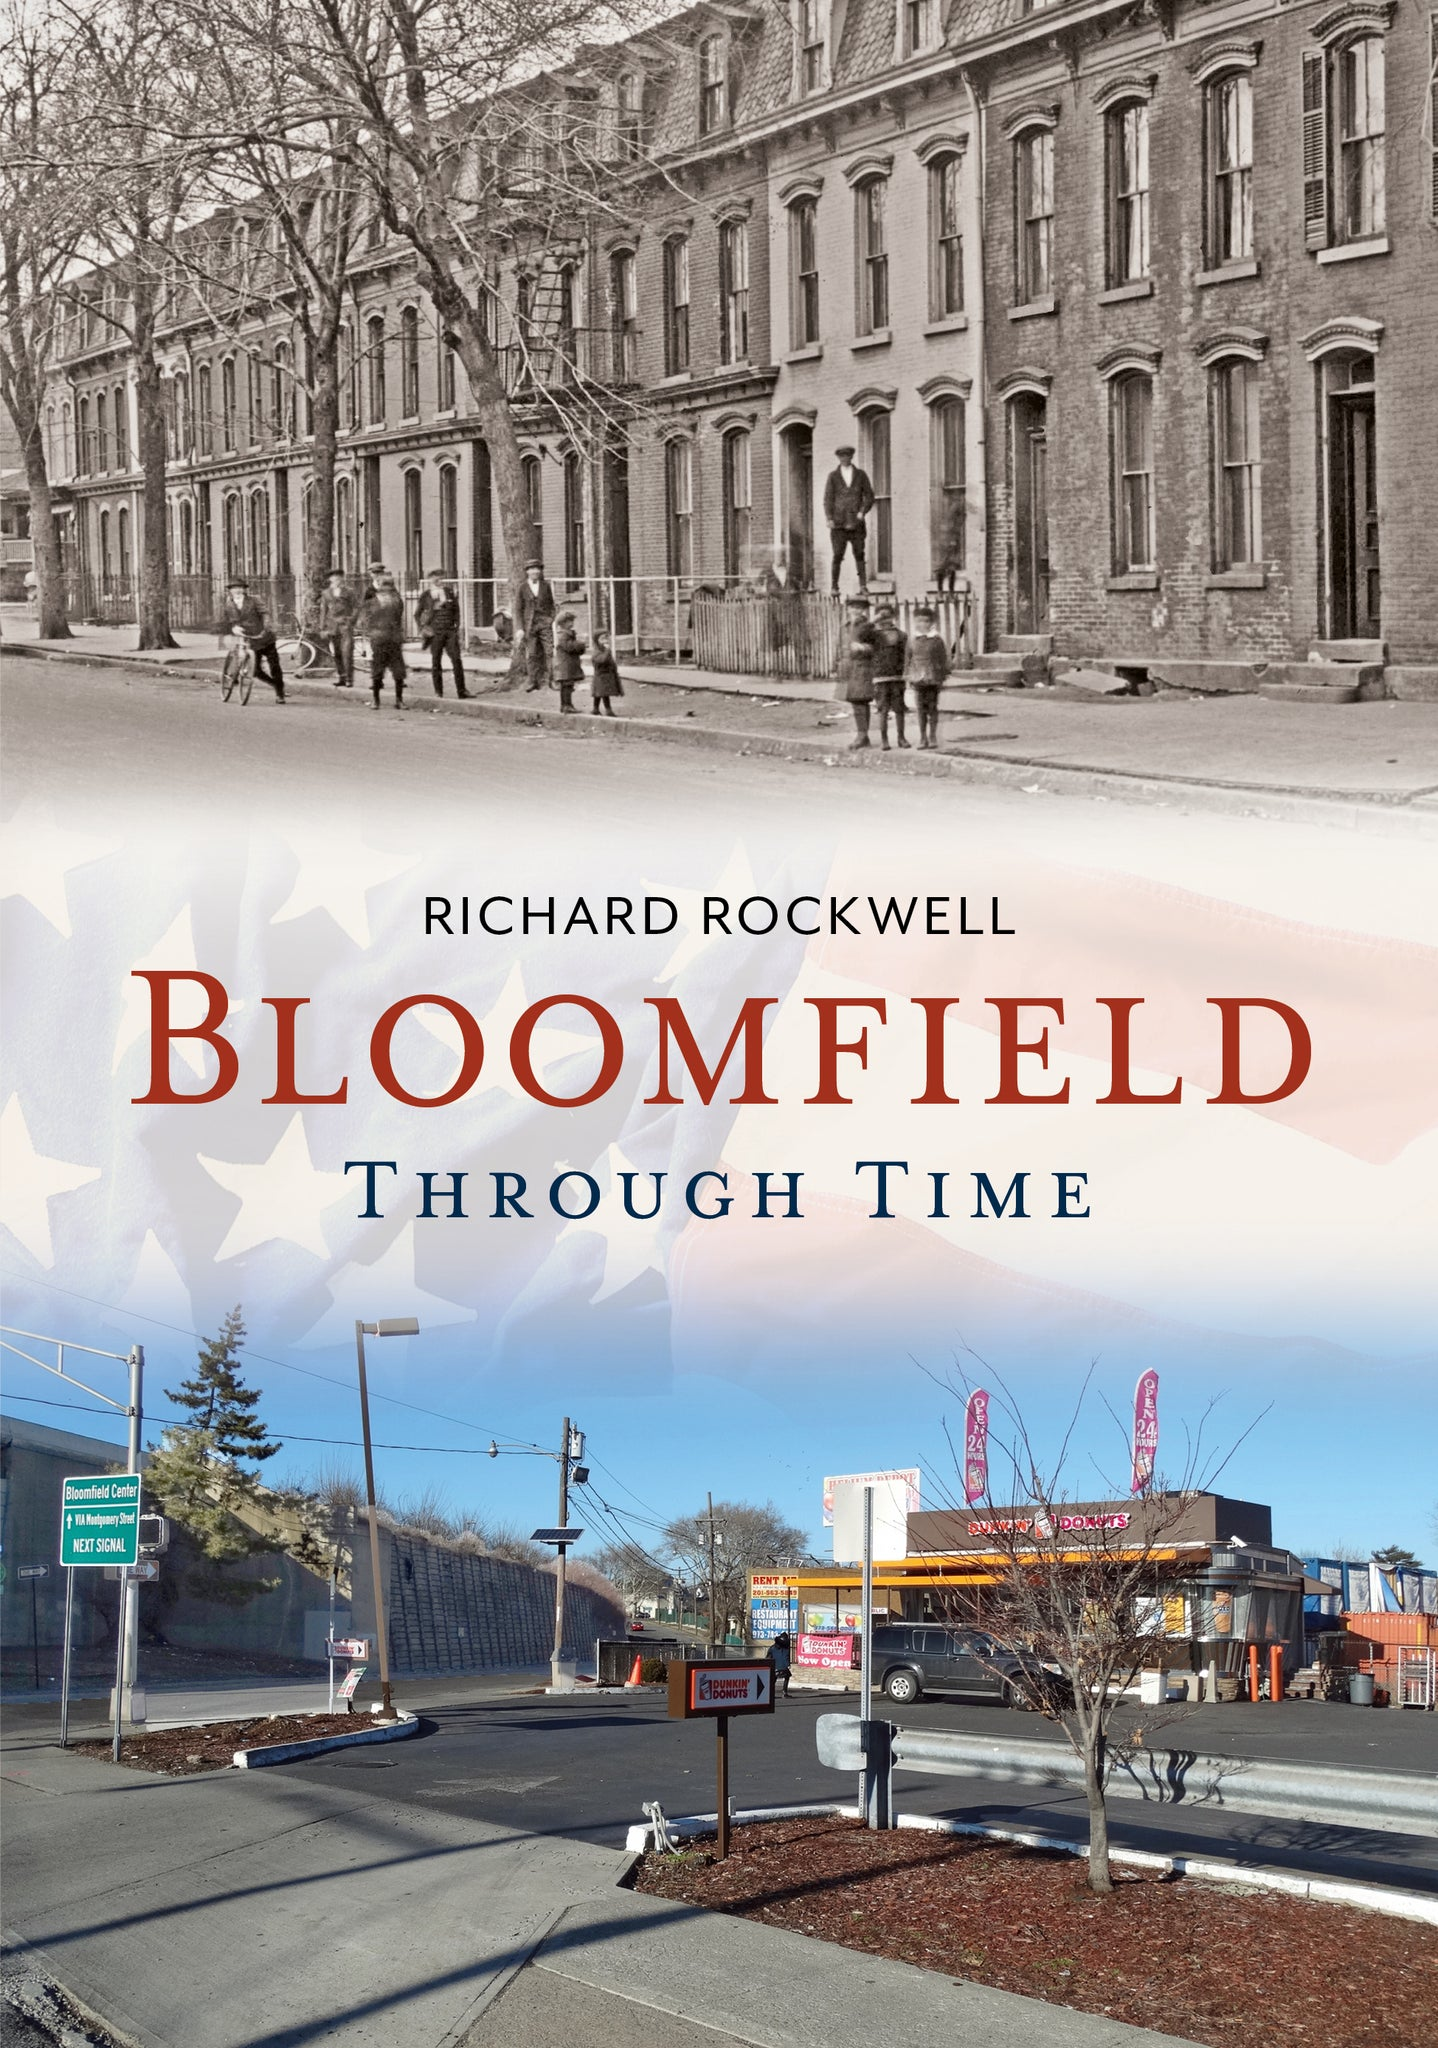 Bloomfield Through Time - published by America Through Time